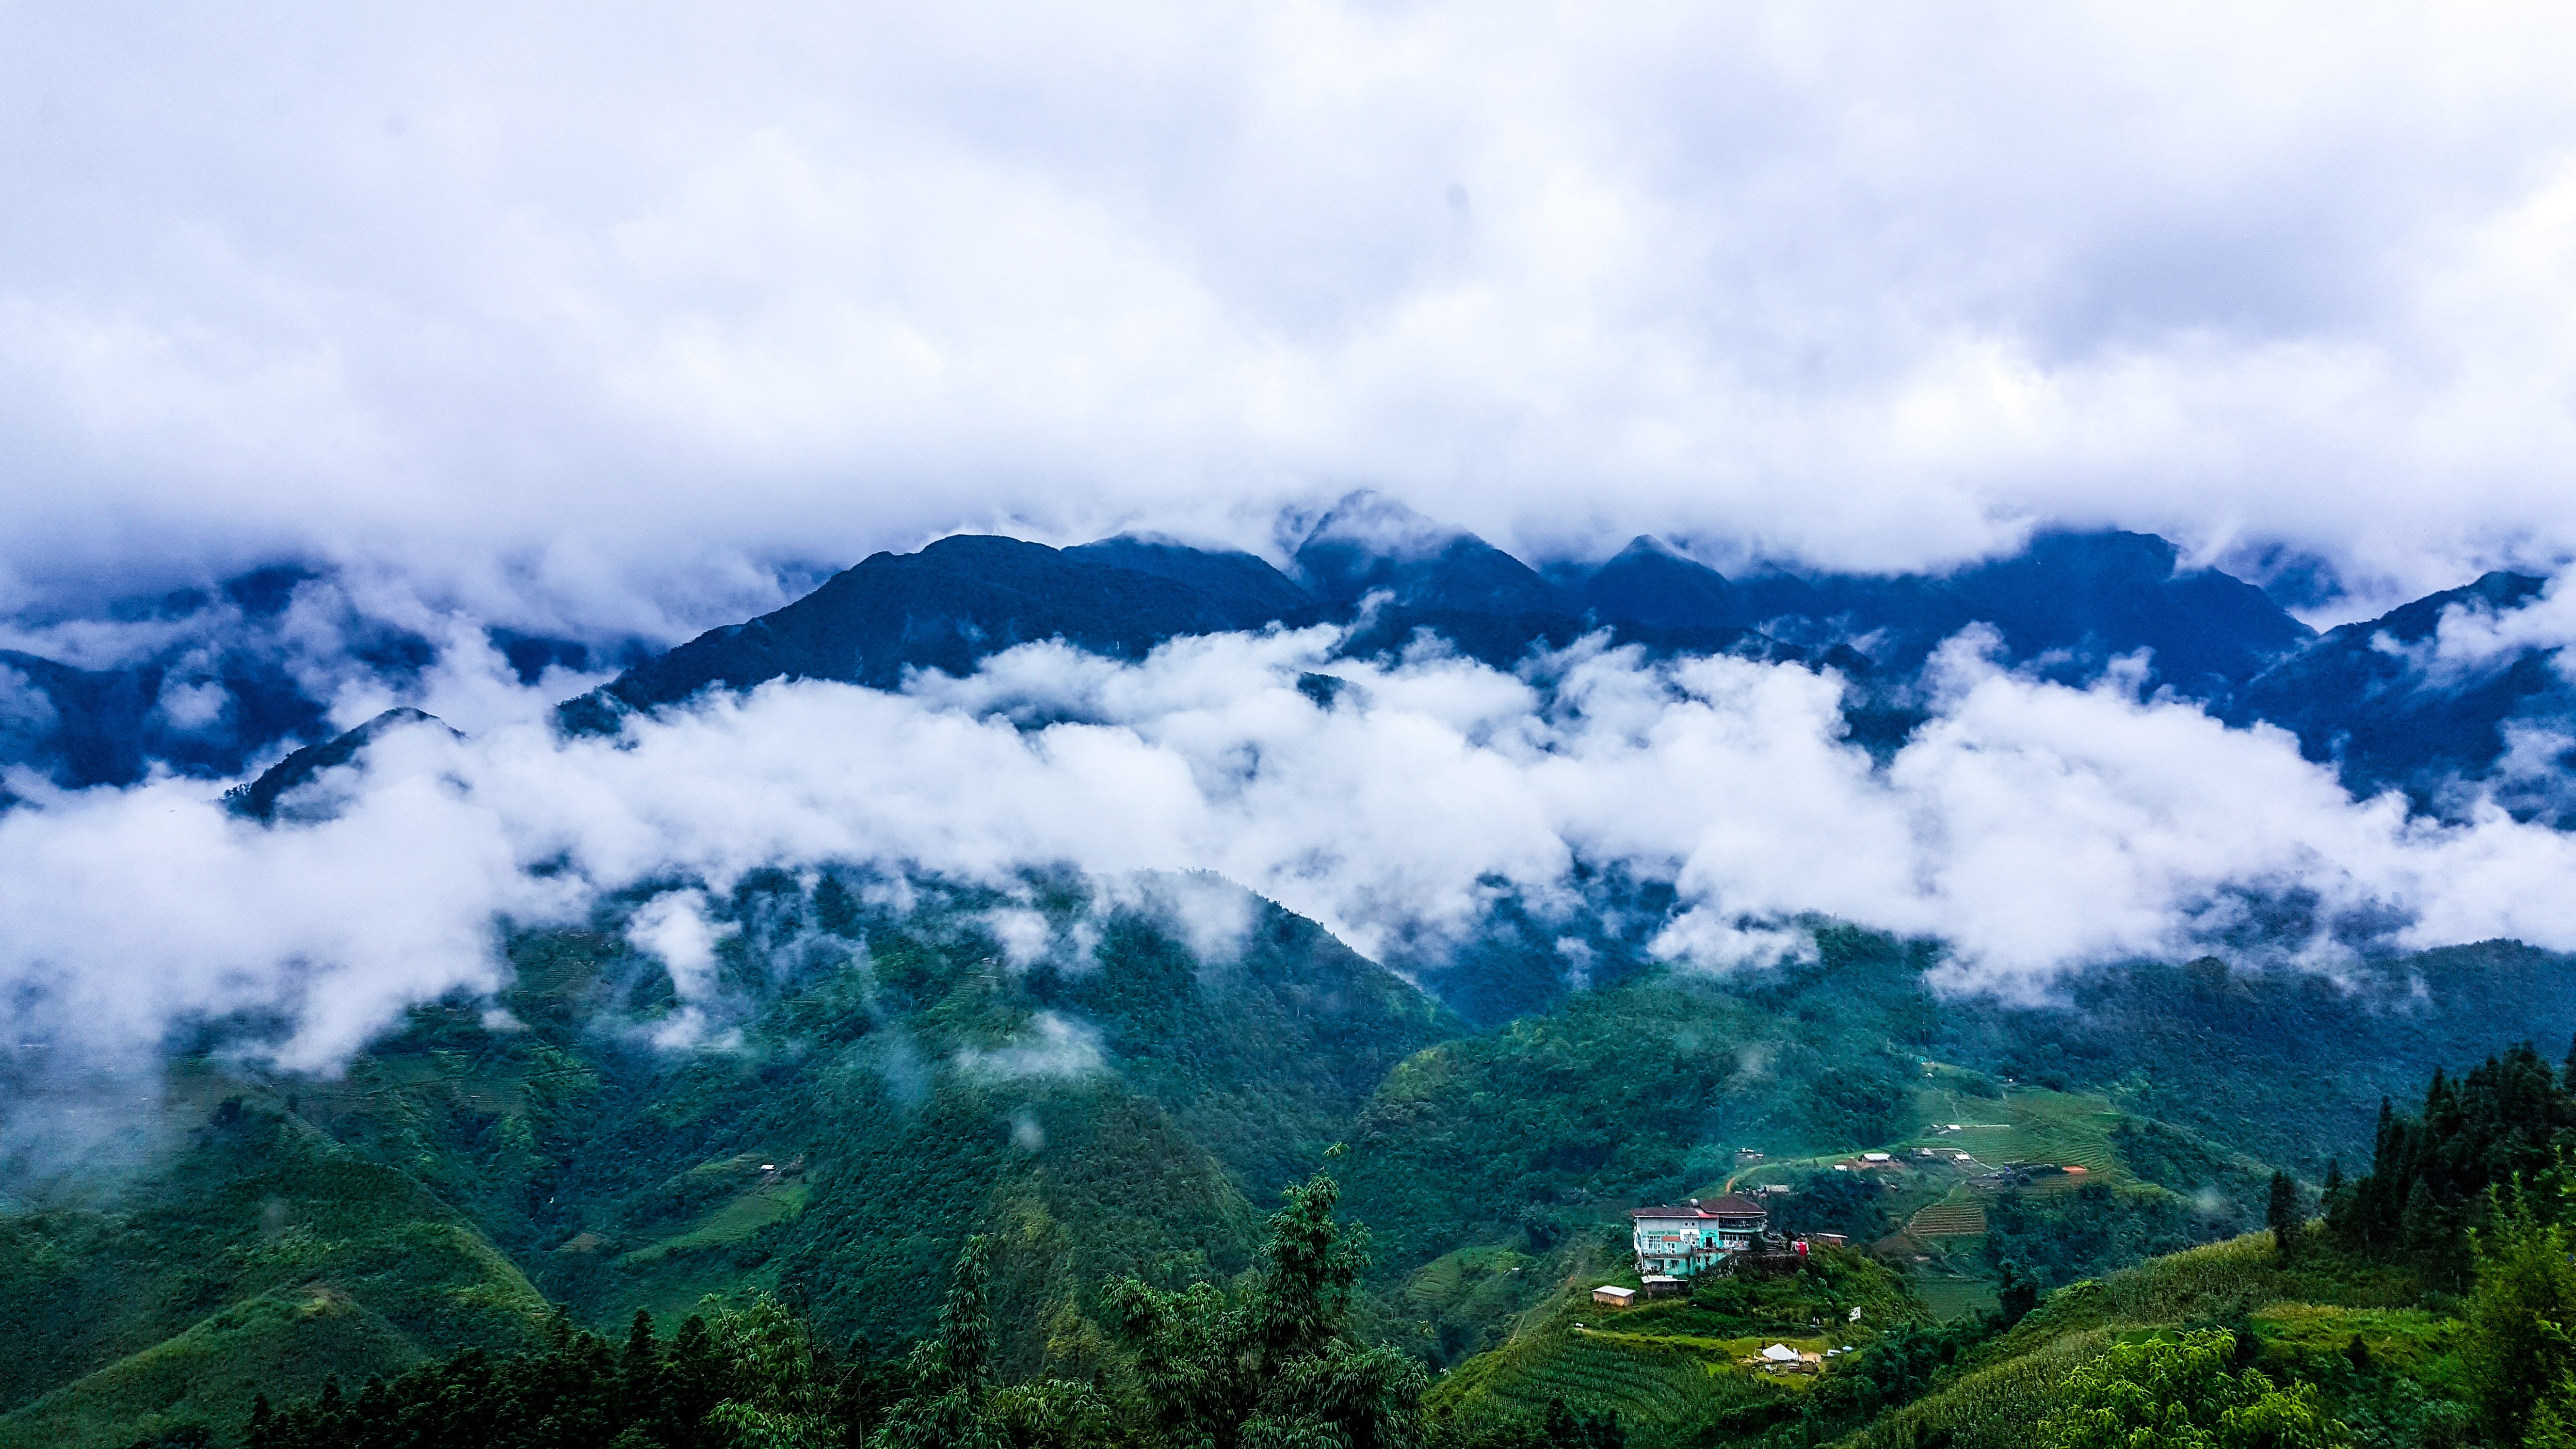 Mountain Covered in Clouds